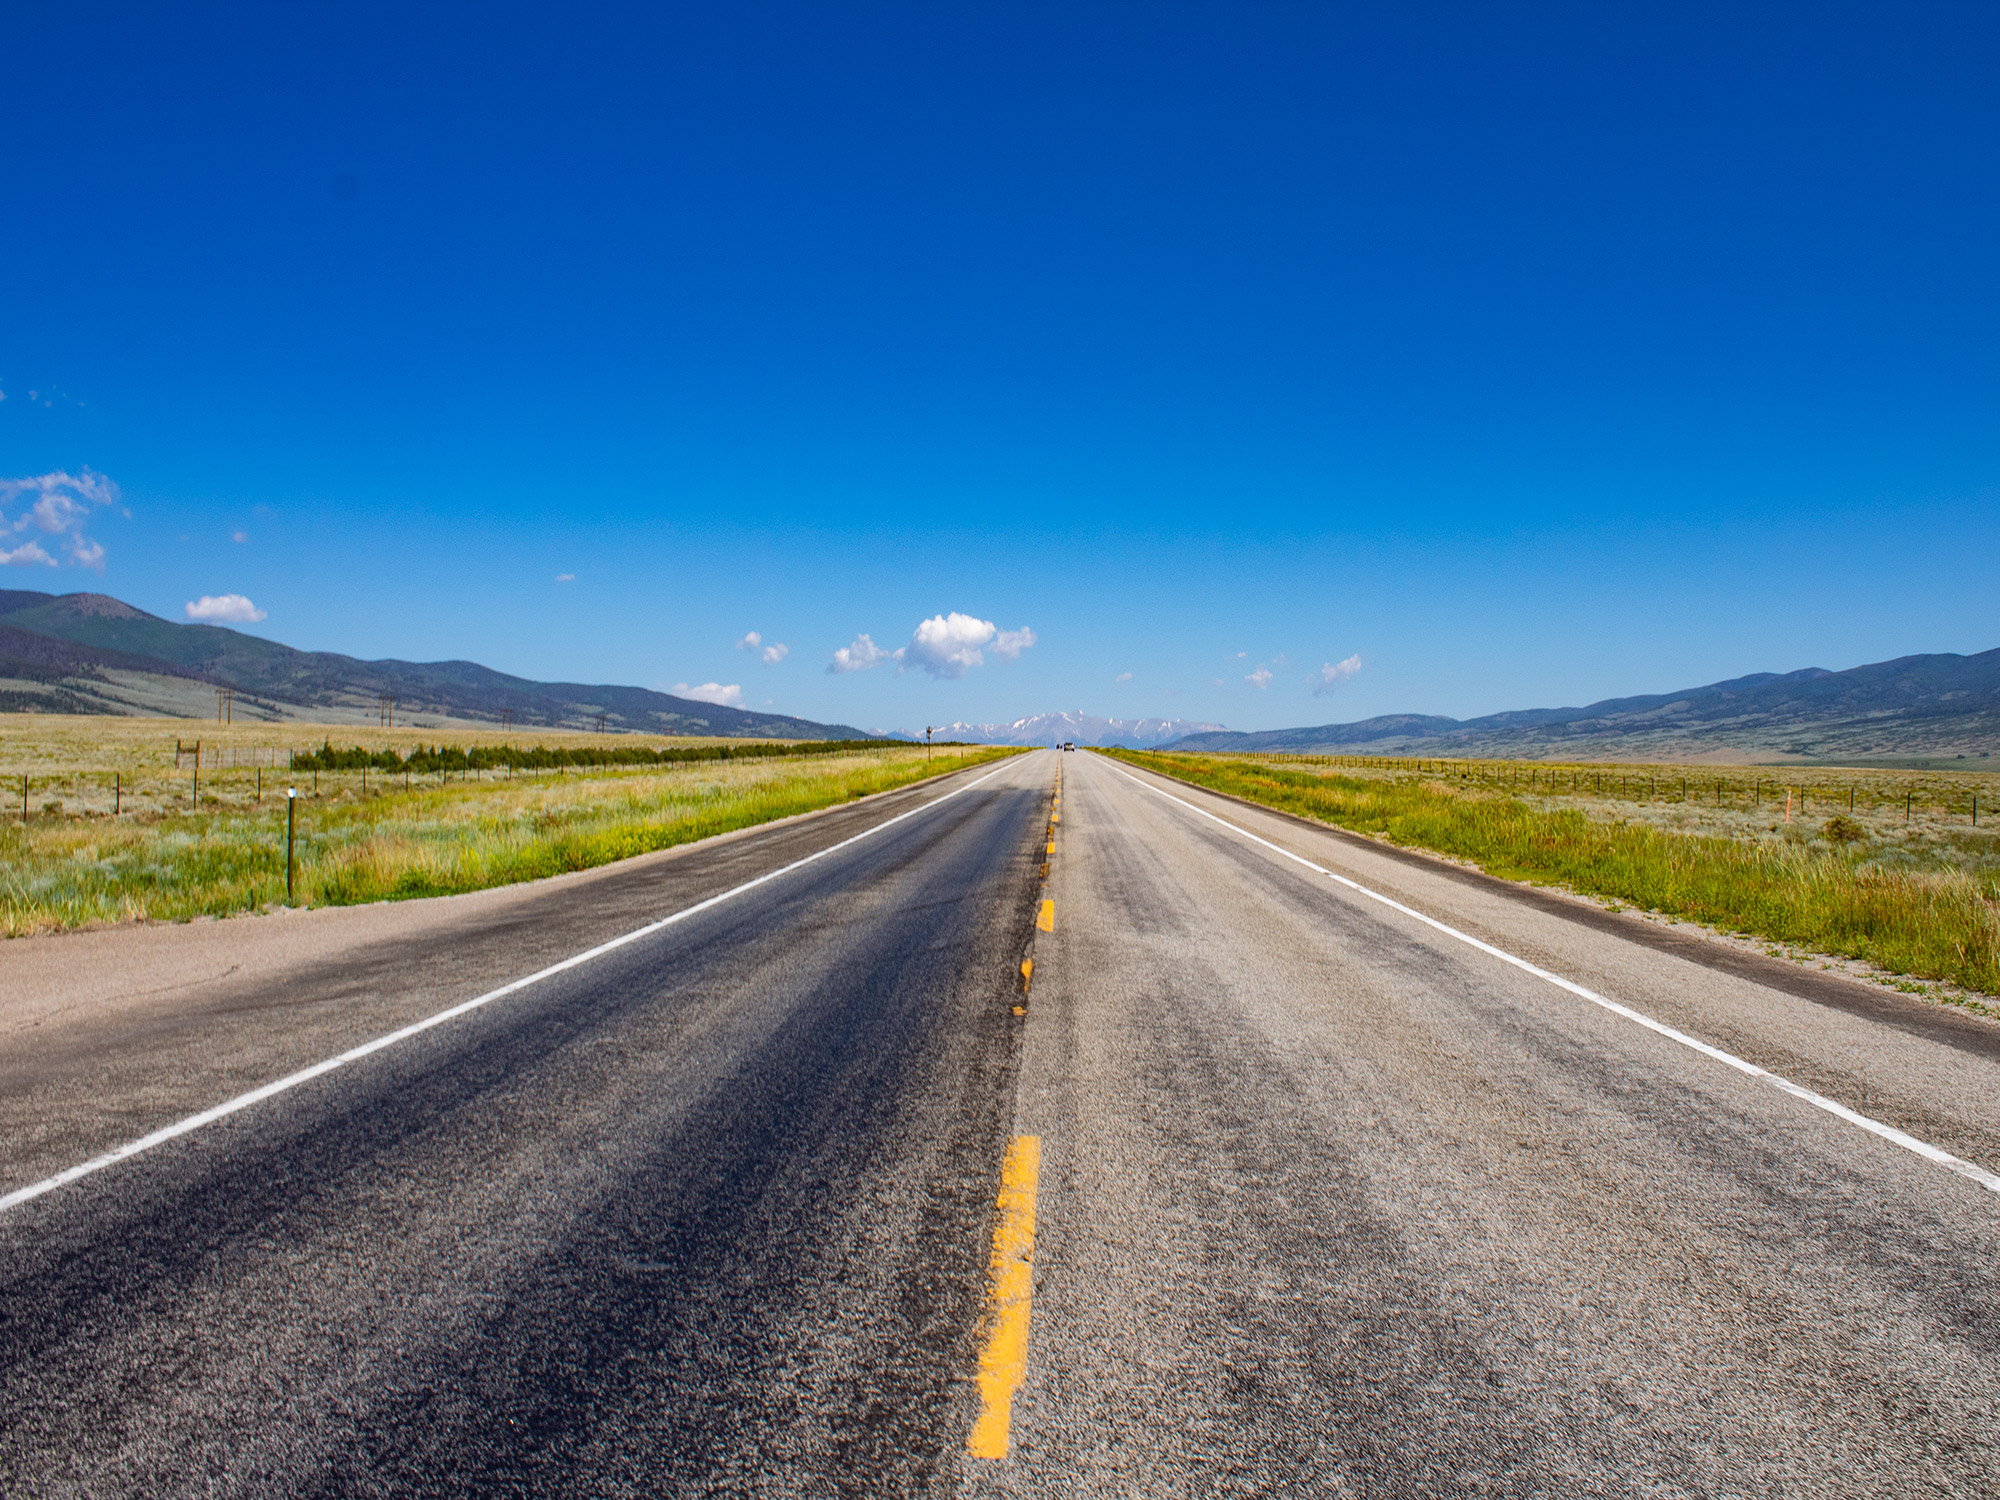 An inspiring view of an open, empty road that vanishes into the mountains in Colorado